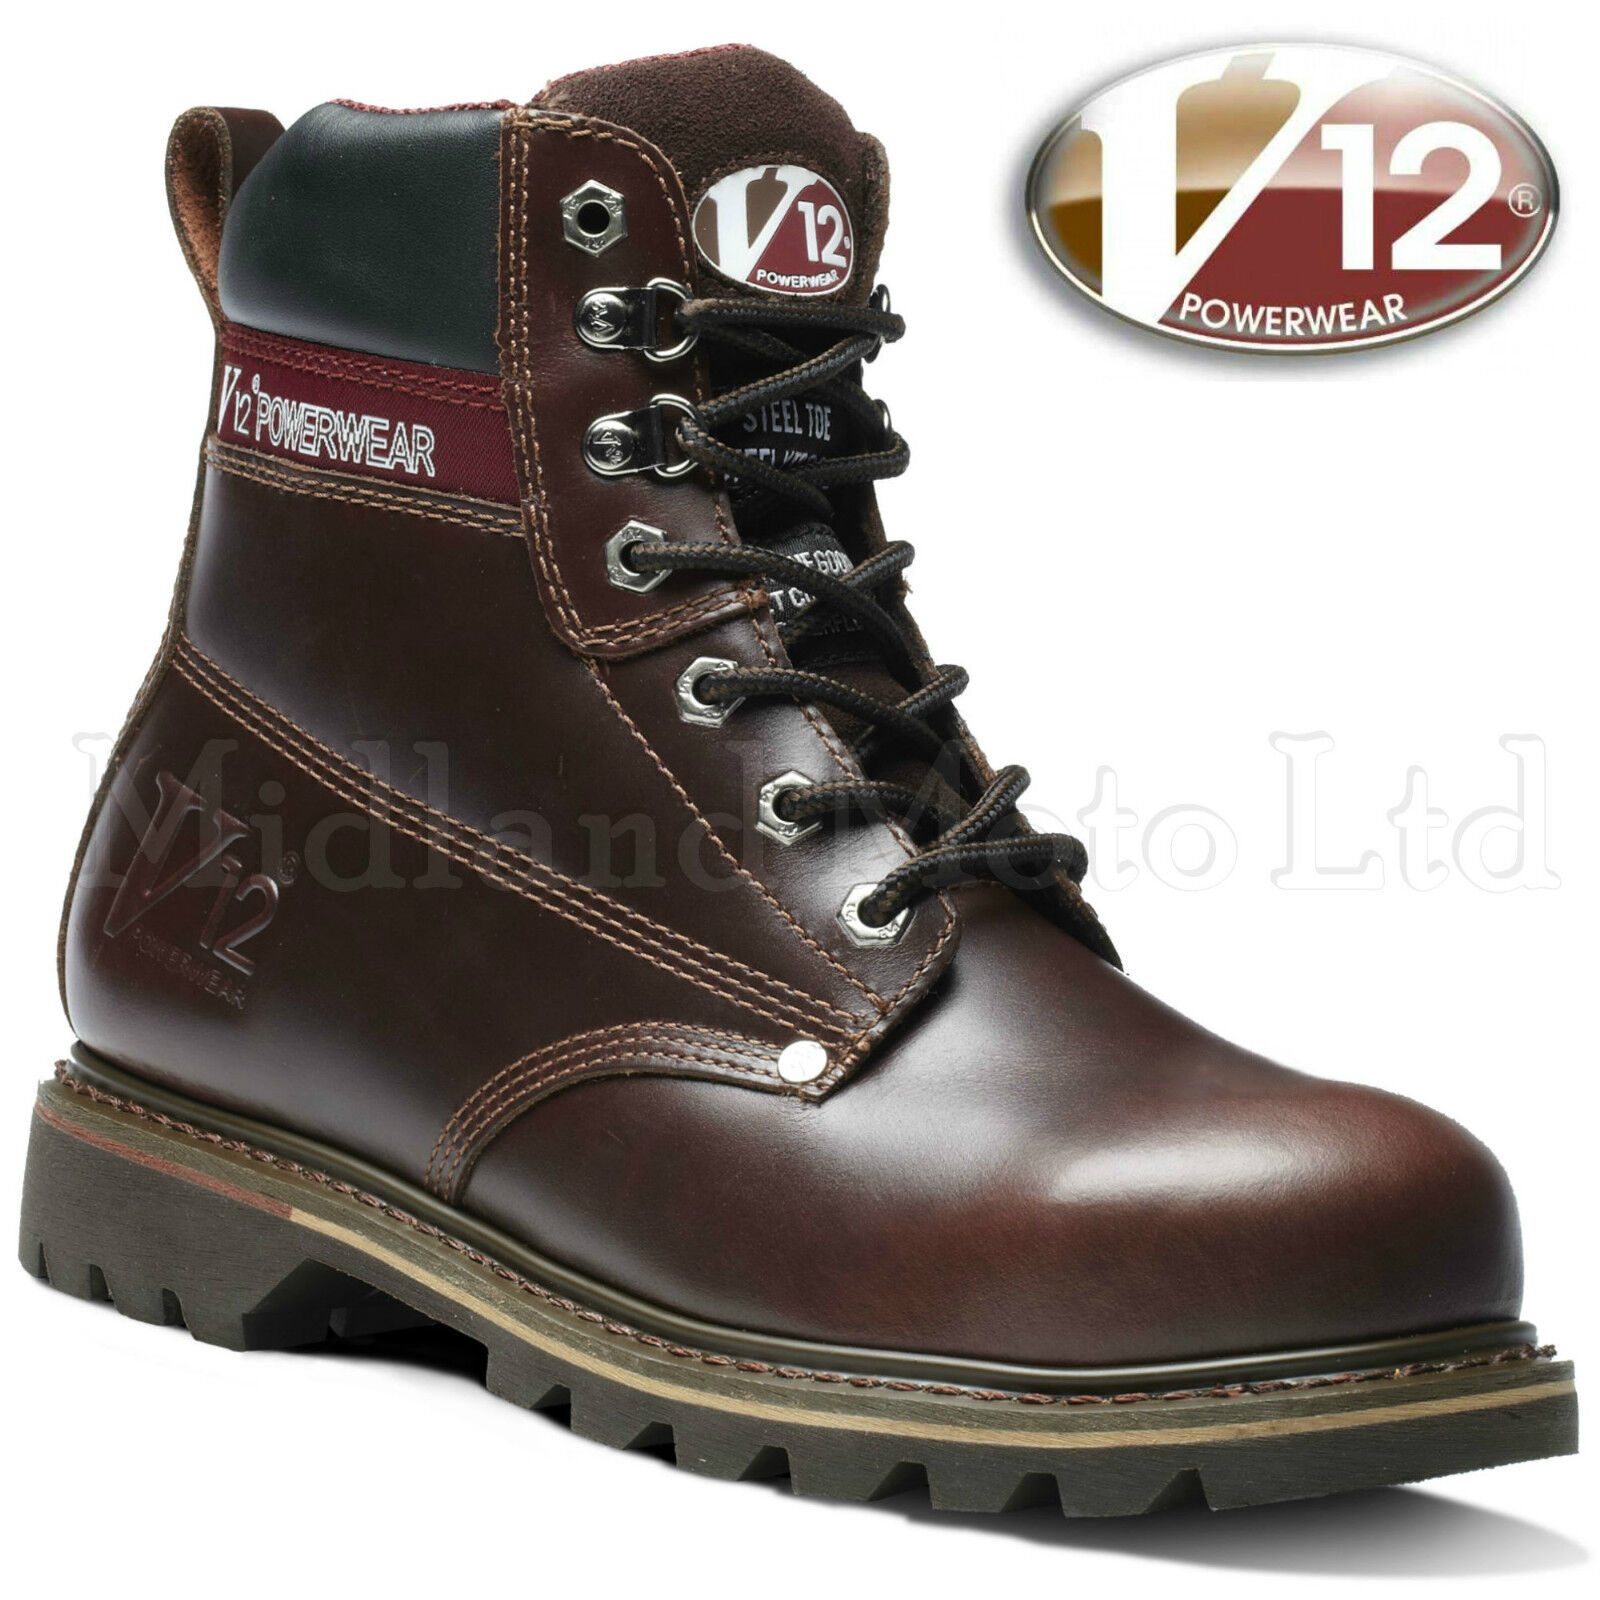 V12 Boulder Steel Toe Cap Lace Up Leather Safety stivali  V1236  nelle promozioni dello stadio